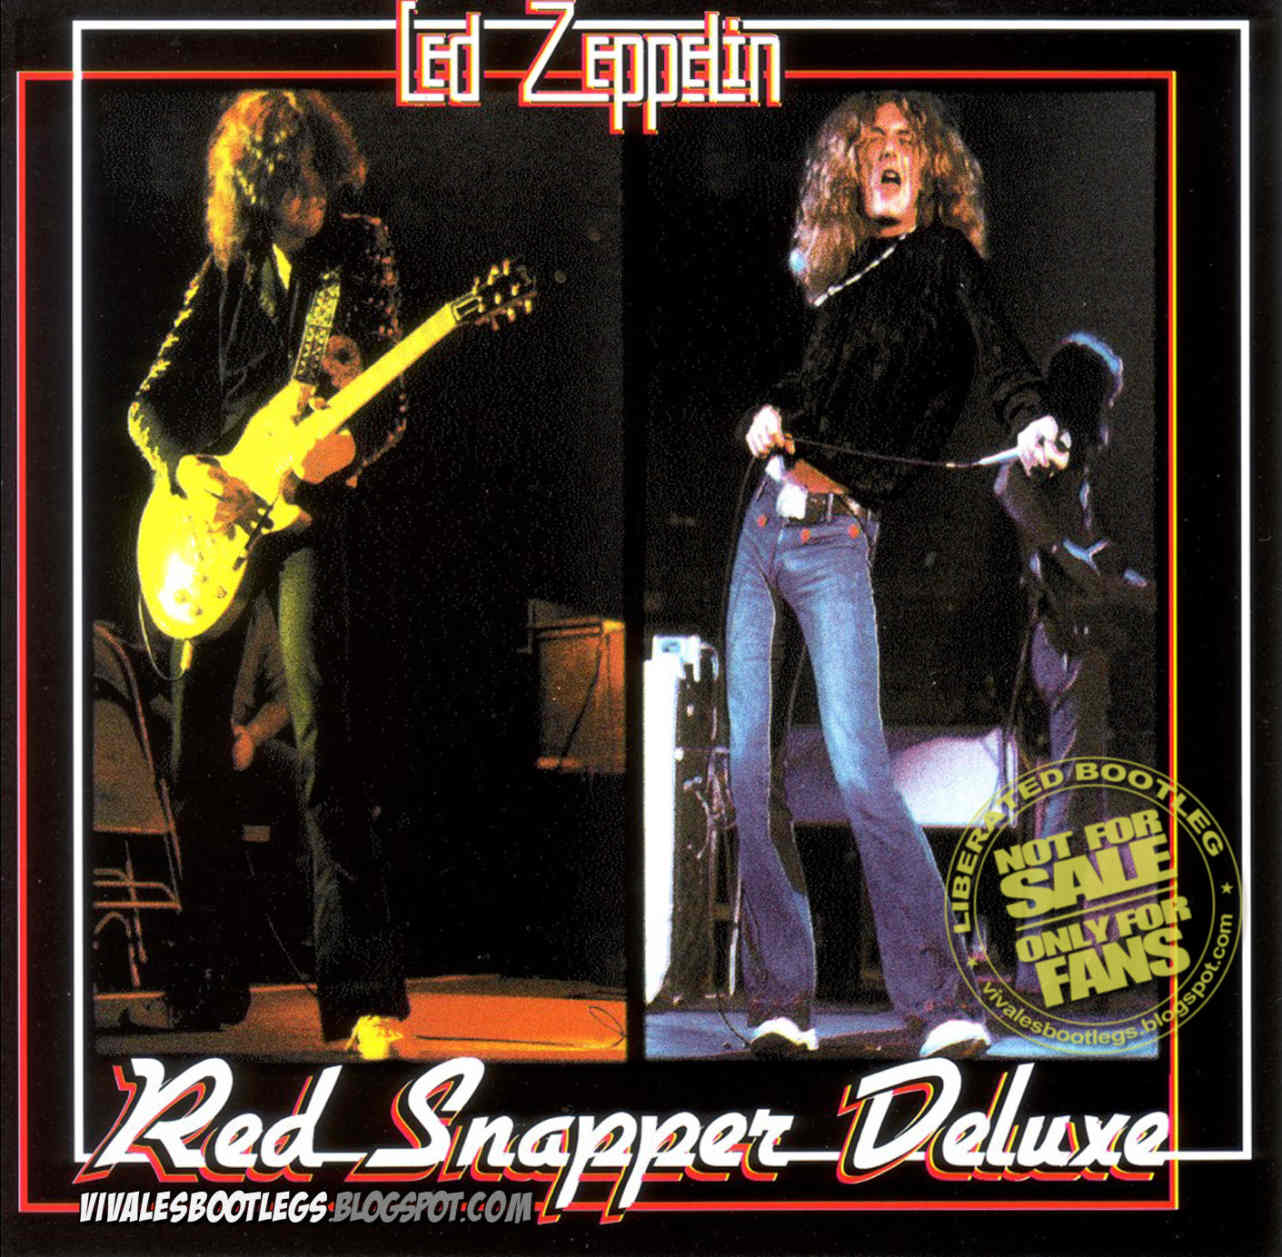 Led Zeppelin: Red Snapper Deluxe  Montreal Forum, Montreal